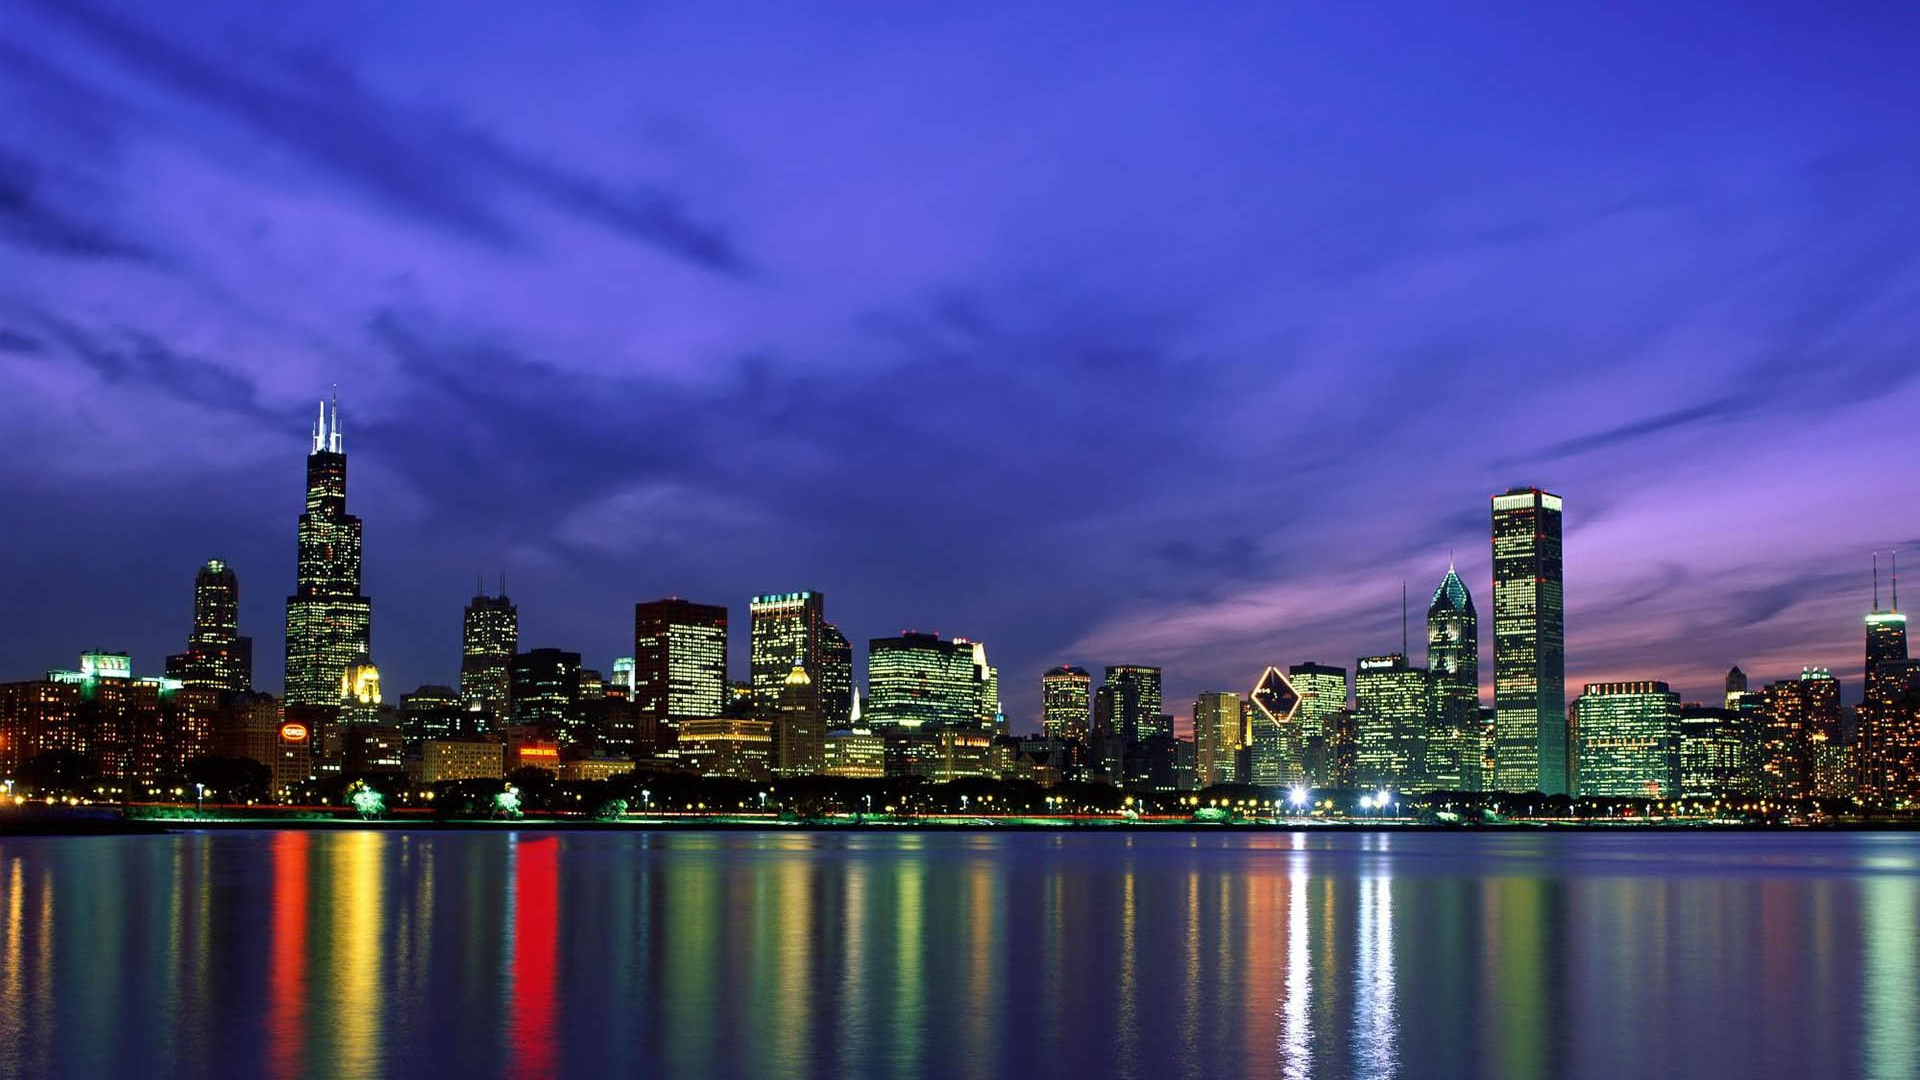 Must see Wallpaper Night Chicago - Chicago-Skyline-at-Night  Image.jpg